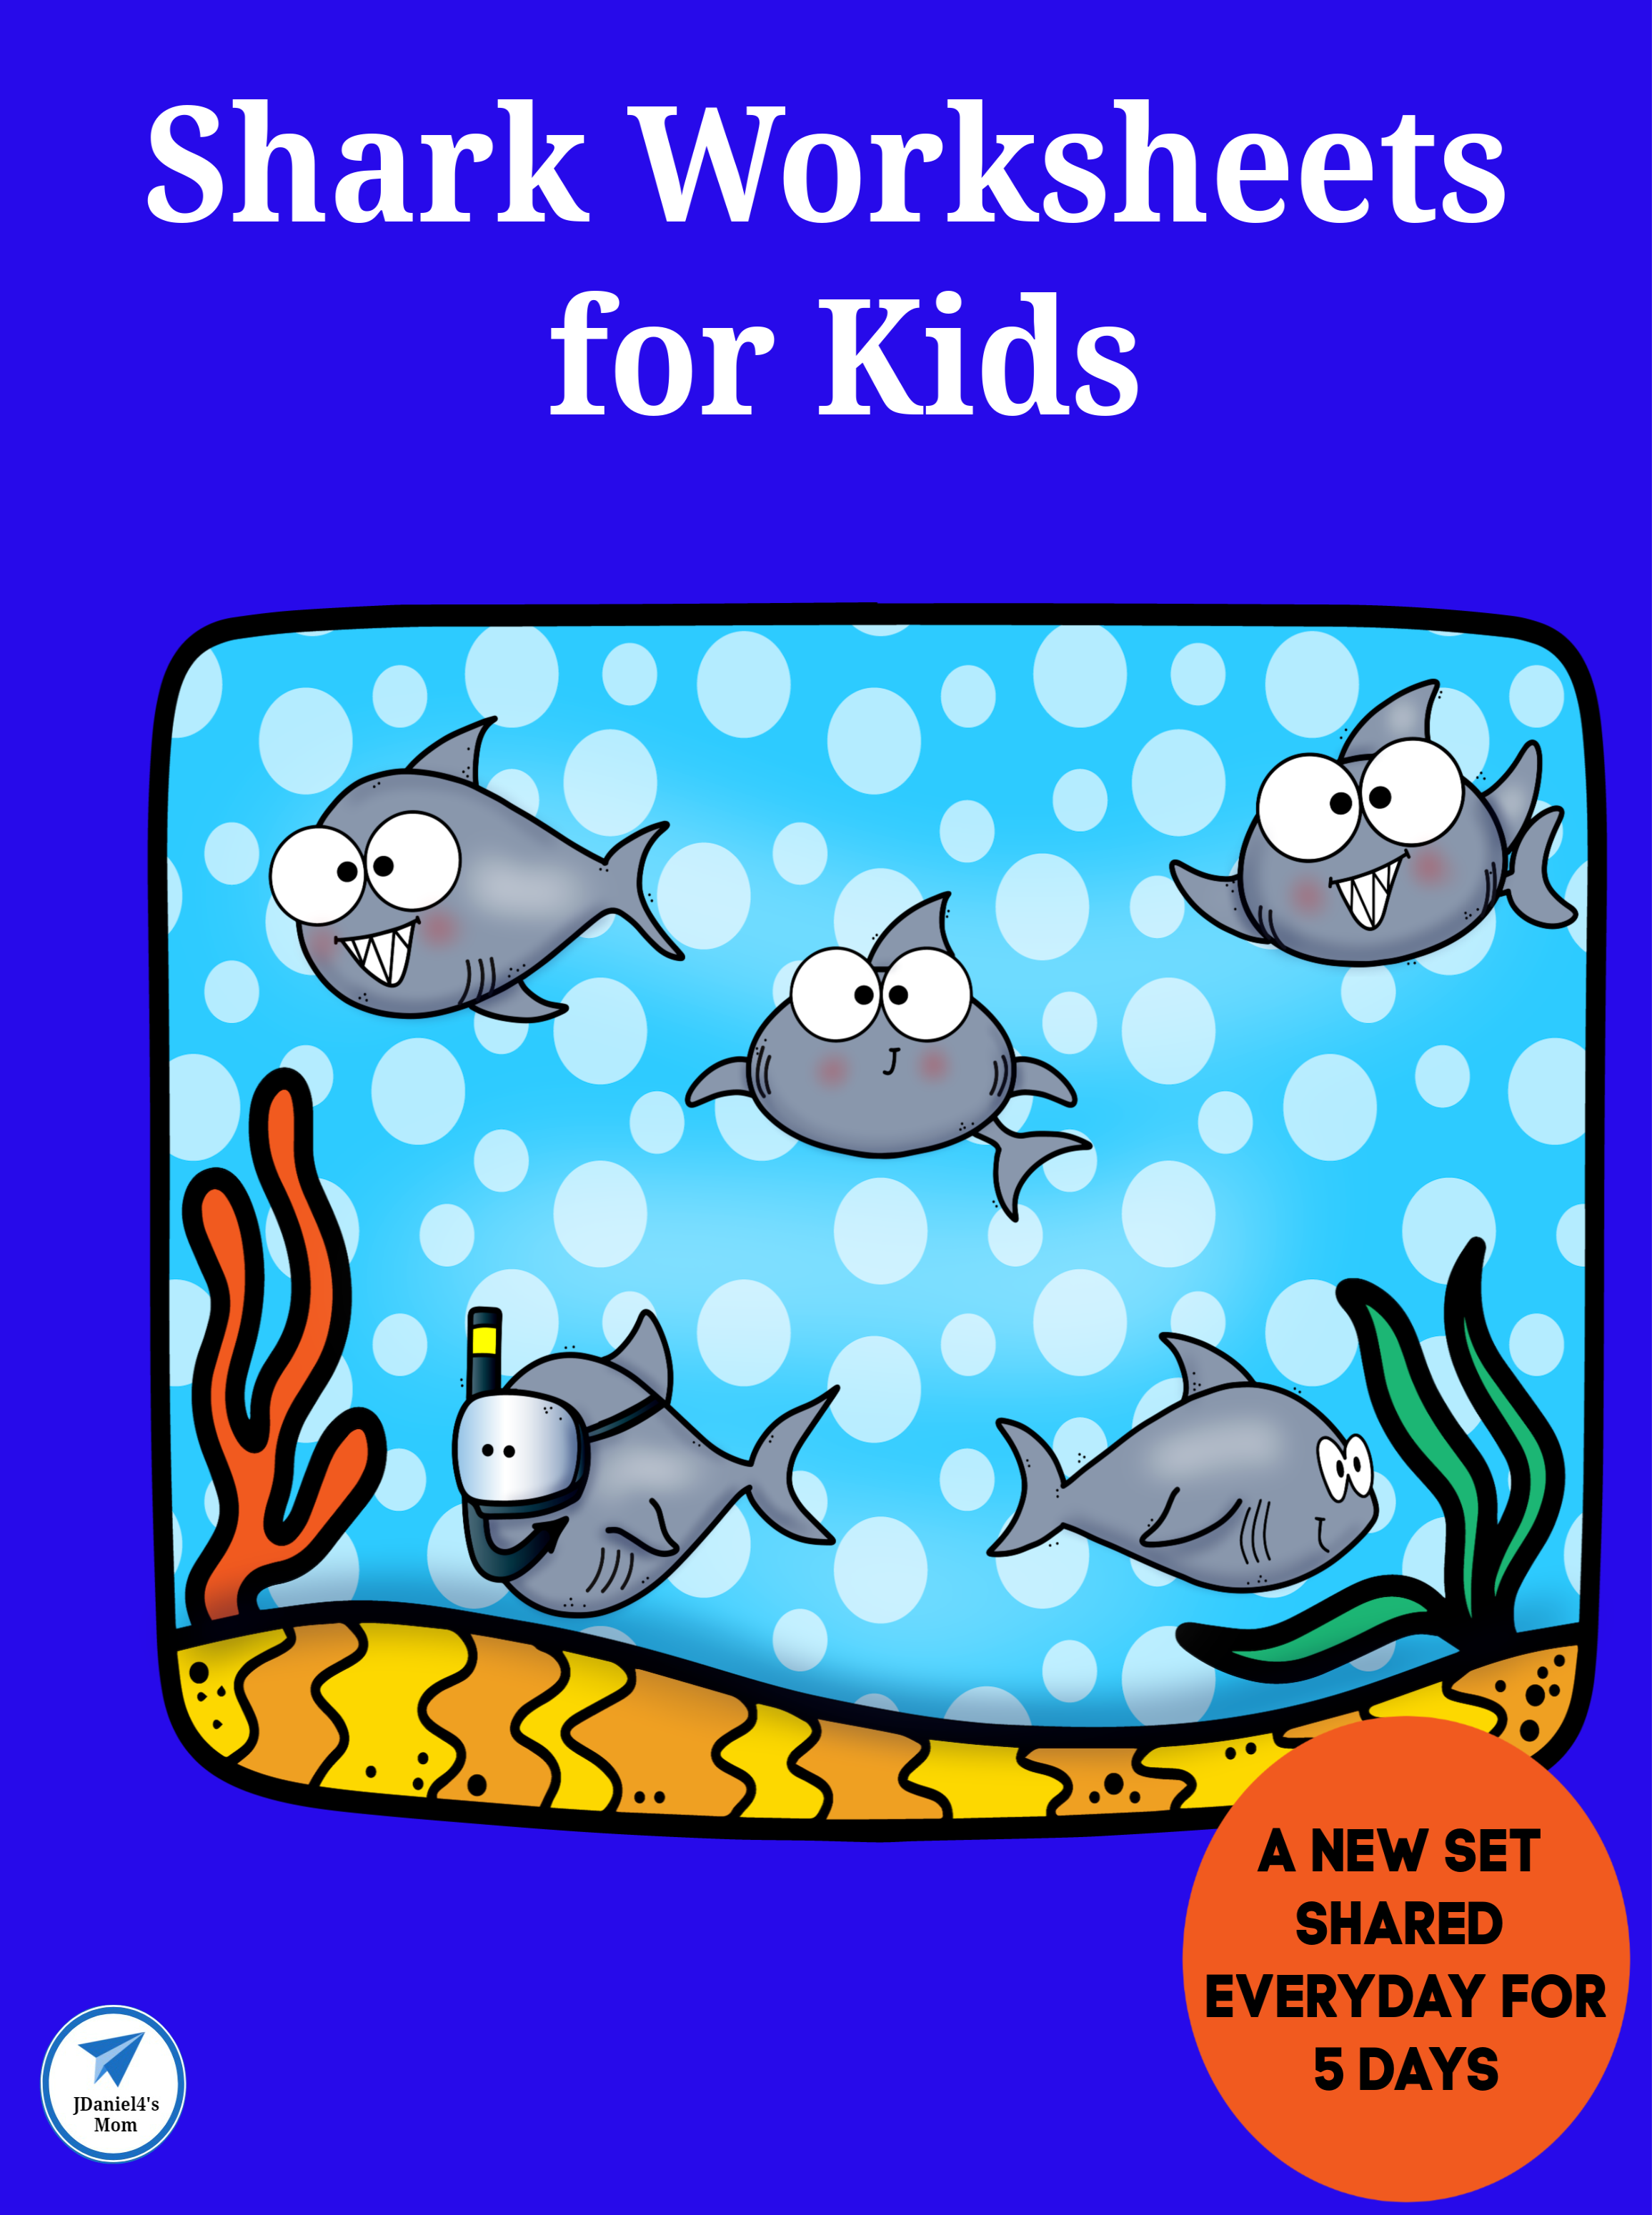 Shark Worksheets For Kids Five Days Worth Jdaniel4s Mom Worksheets For Kids Early Learning Math Shark Activities [ 3100 x 2312 Pixel ]